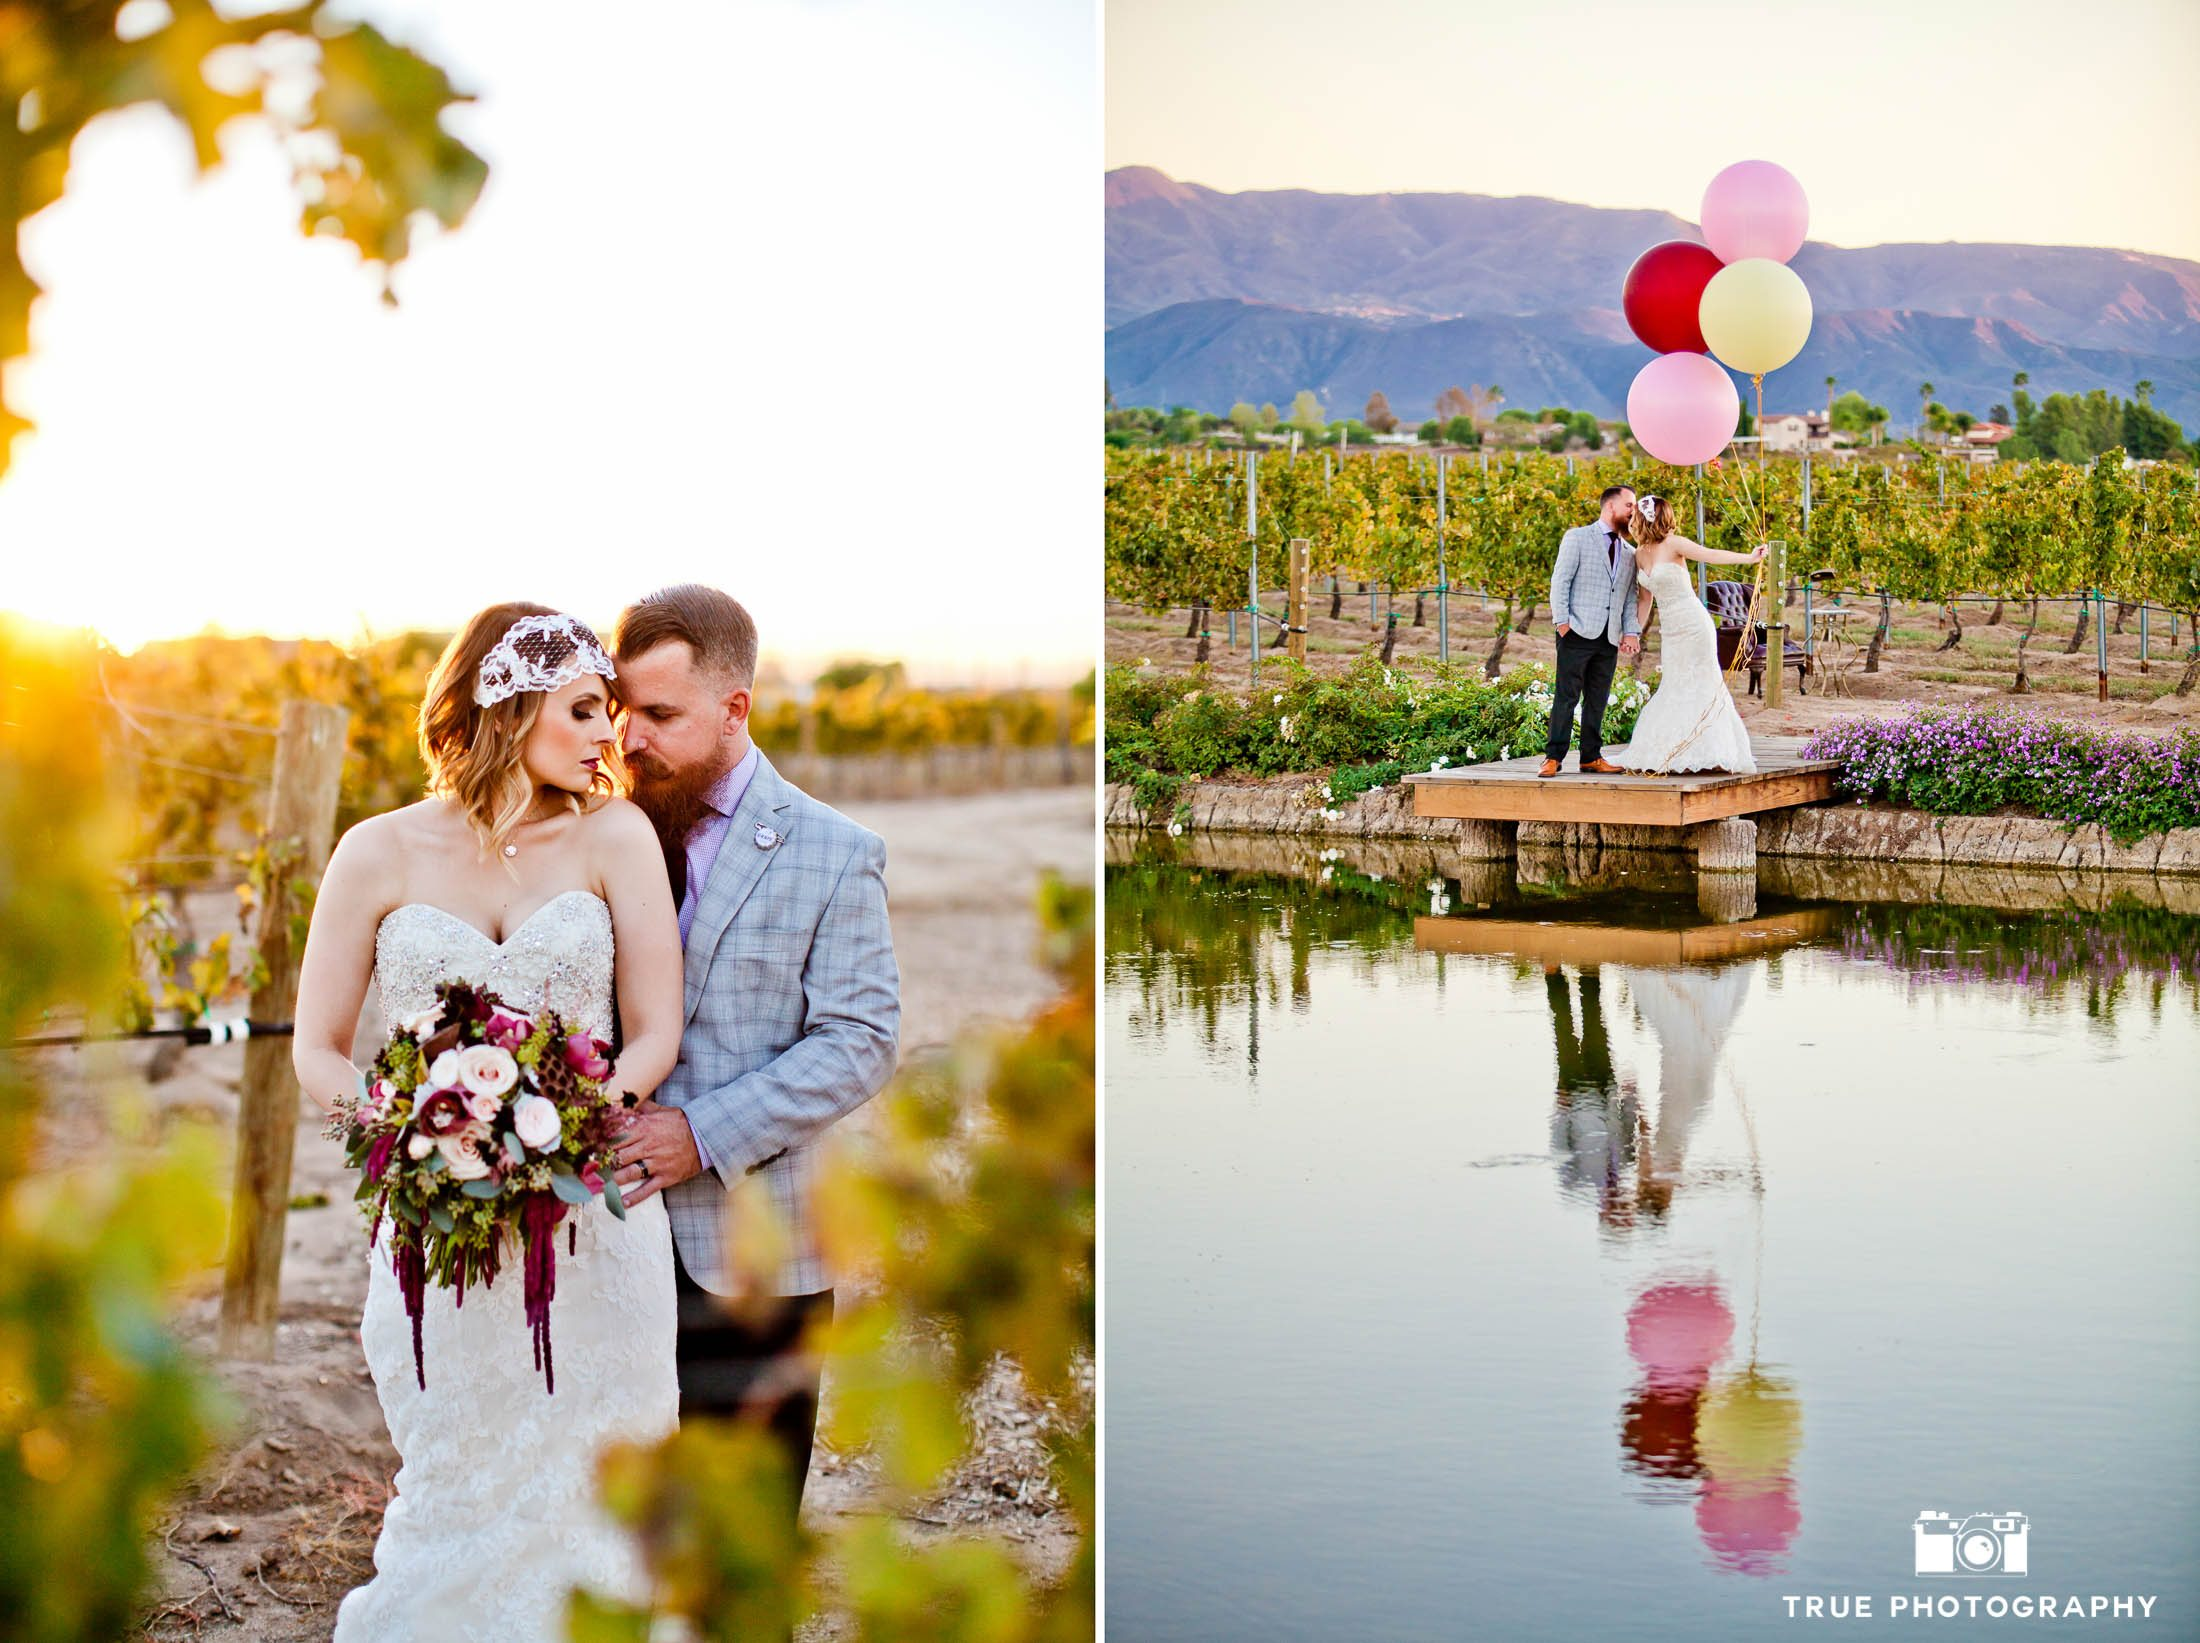 Modern Couple pose in vineyard and with balloons